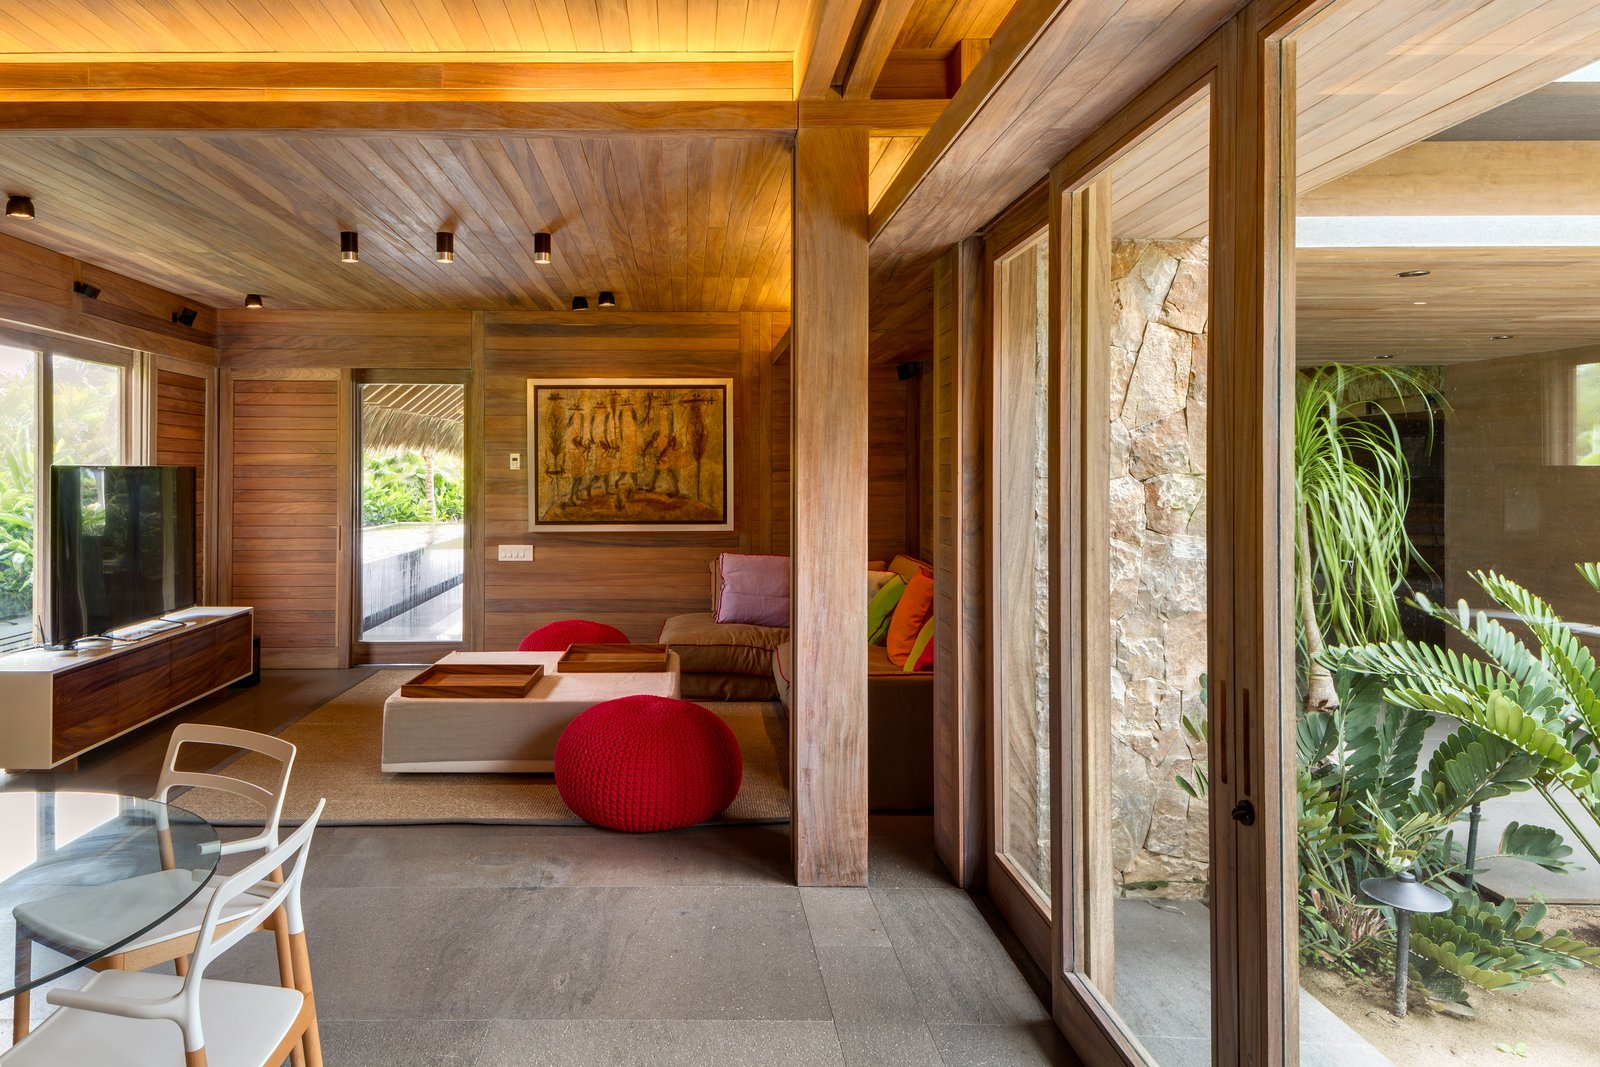 Living Room, Sofa, Ottomans, Coffee Tables, Ceiling Lighting, Cement Tile Floor, Chair, and Console Tables The material palette includes naturally finished local parota wood and rough-cut stone.  Photo 11 of 14 in This Expansive Beachside Home on Mexico's Pacific Coast Puts a Modern Spin on Tradition